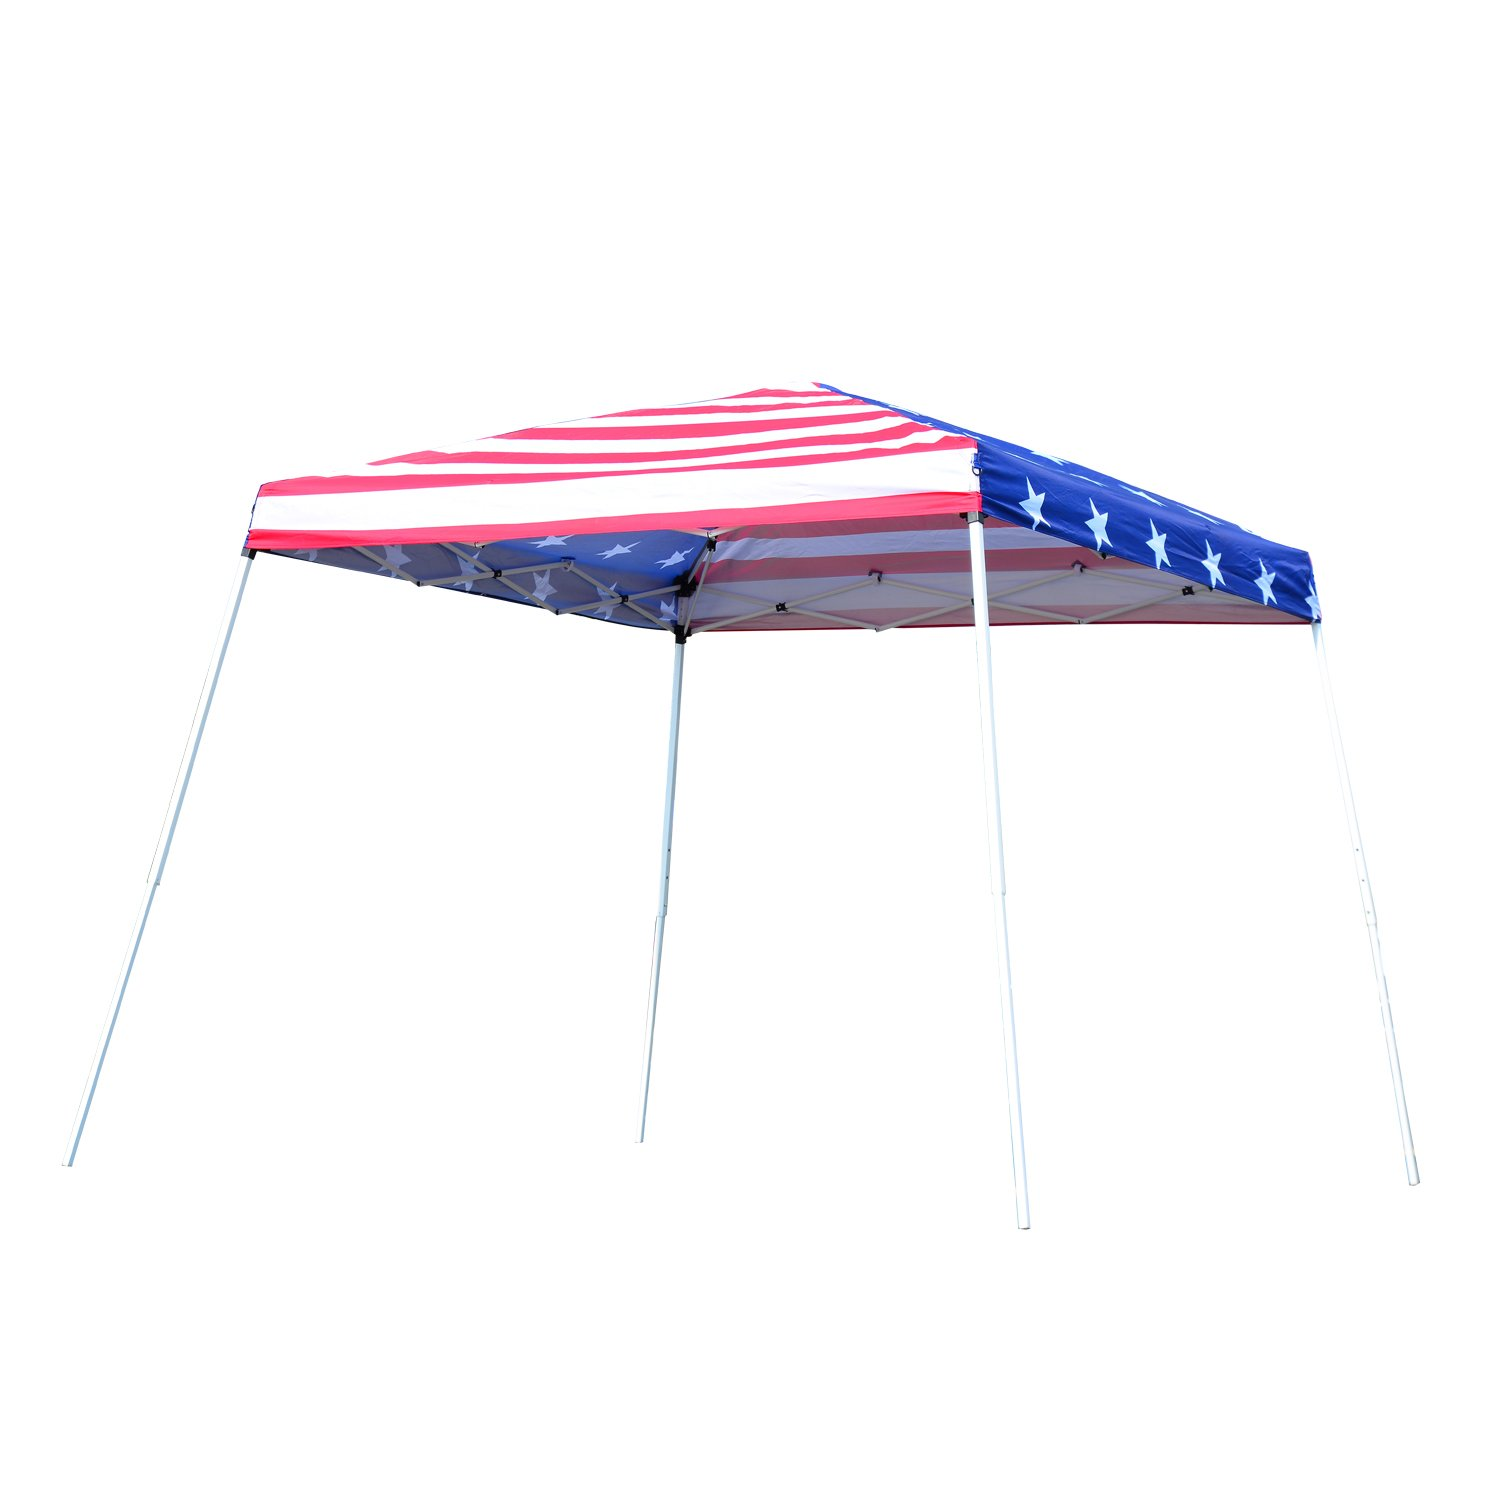 Outsunny 10' x 10' Slant Leg Pop-Up Canopy Shelter Party Tent American Flag